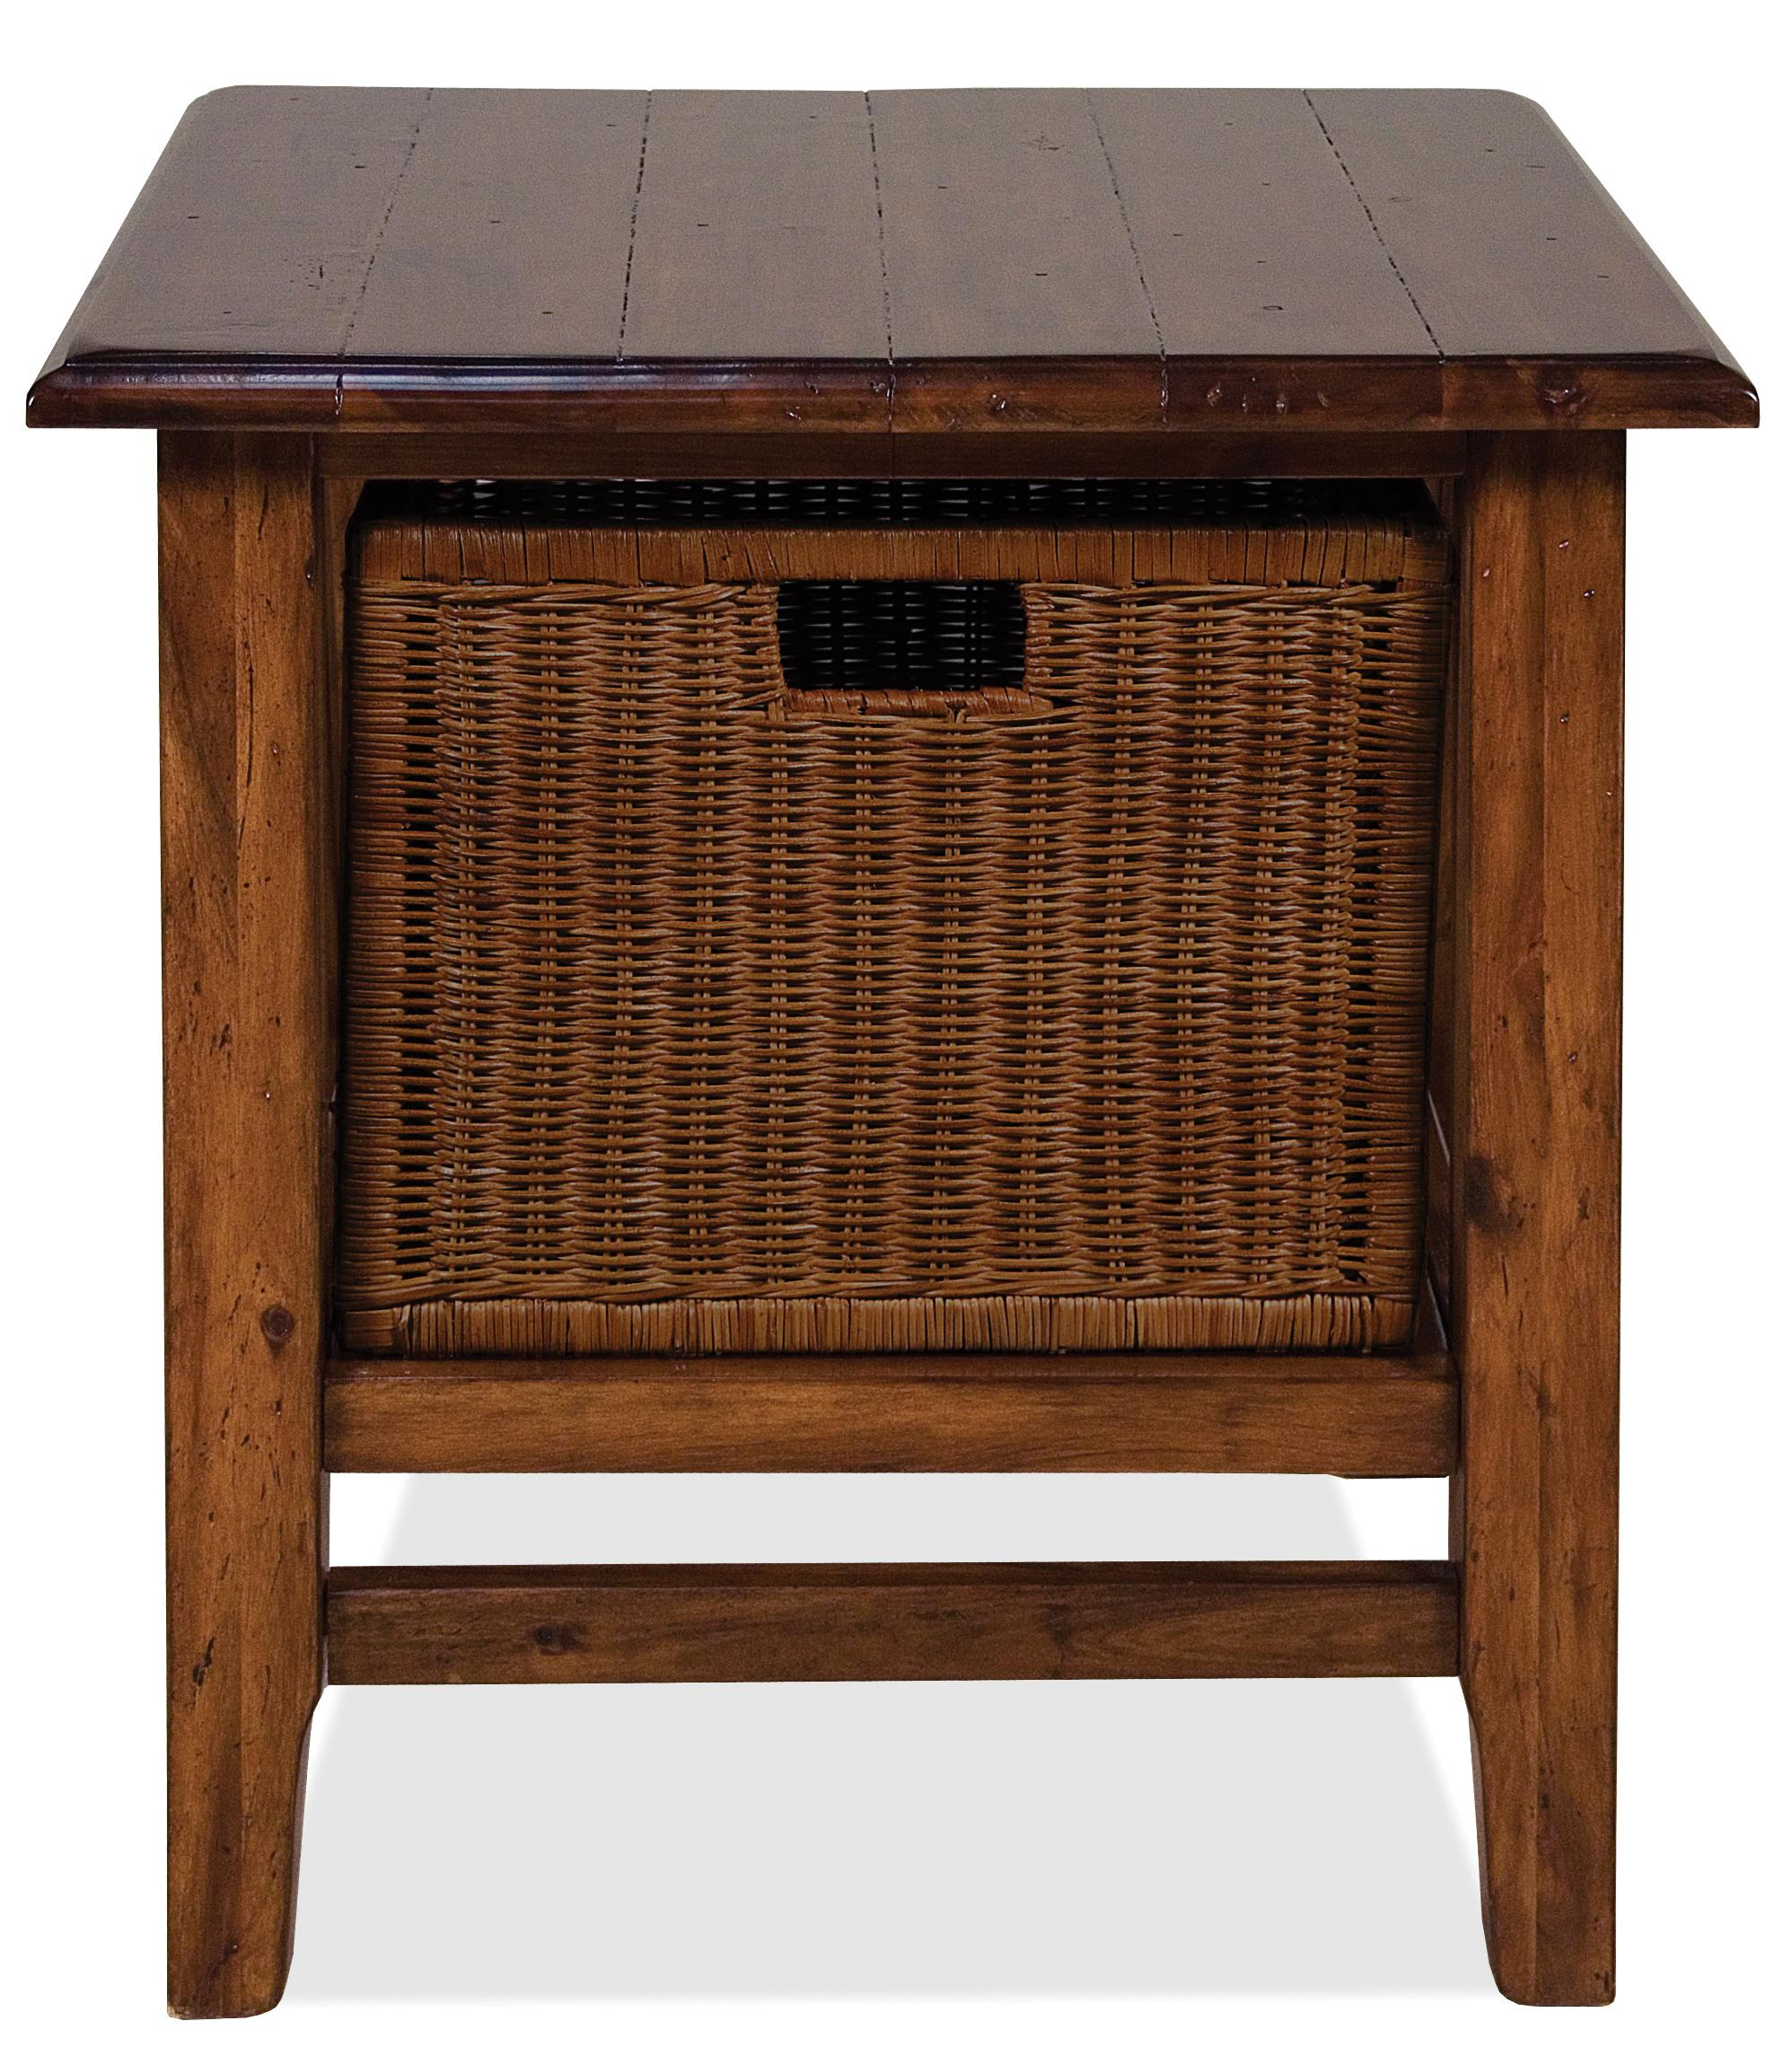 rectangular end table with storage basket oval accent wicker baskets kitchen green narrow hallway pier dining mirrored cube side high dorm room drop leaf drawer battery operated